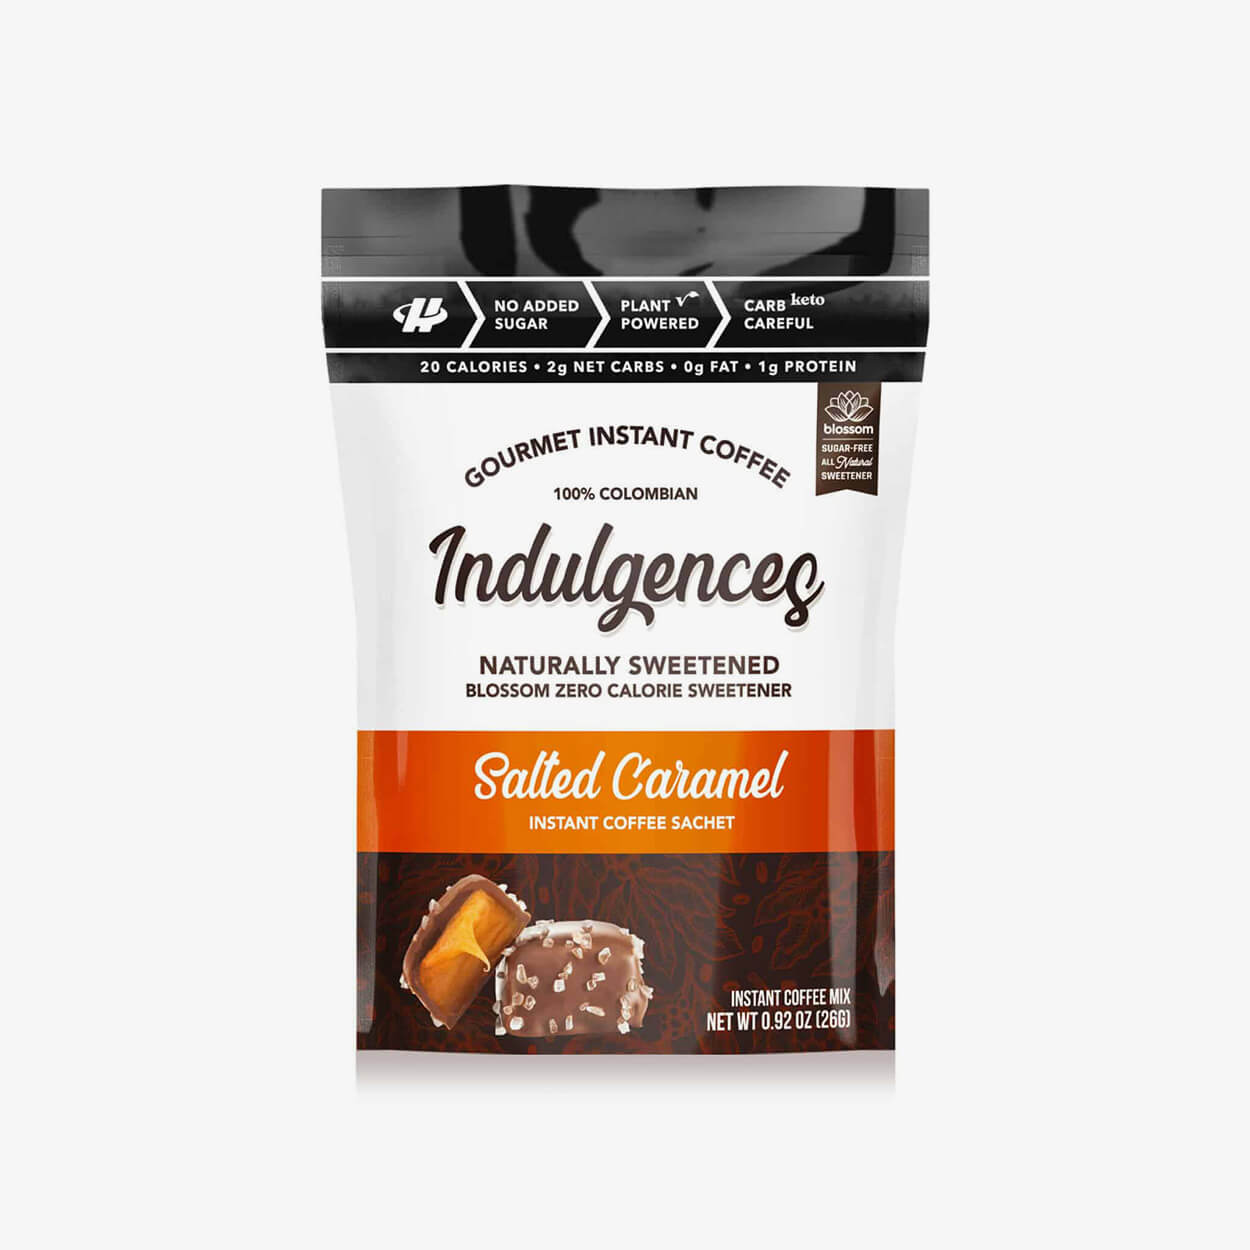 Salted Caramel Instant Coffee - Indulgences - Halo Healthy Tribes